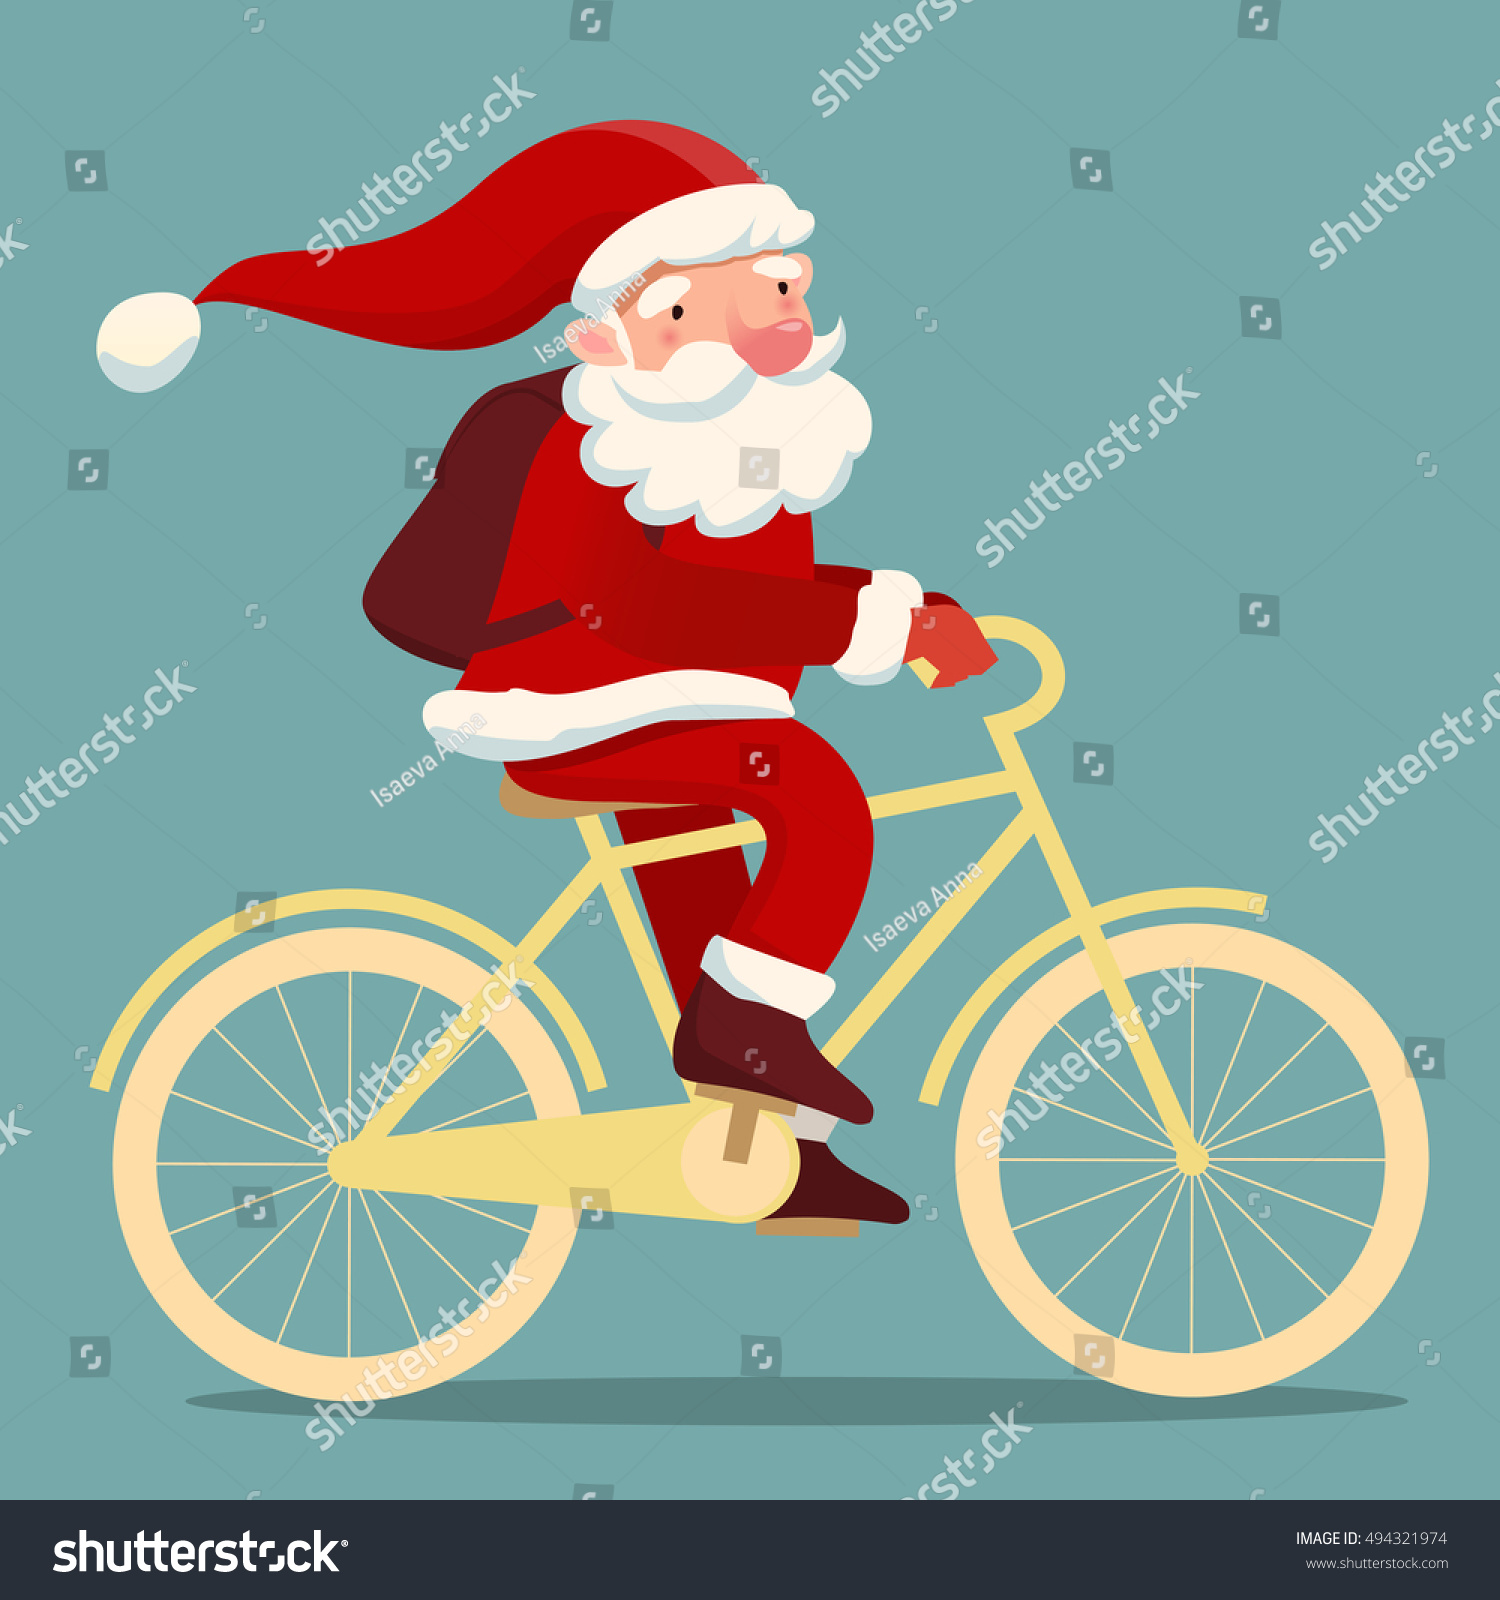 Cute Santa Claus On Bicycle Backpack Stock Vector (Royalty Free ...